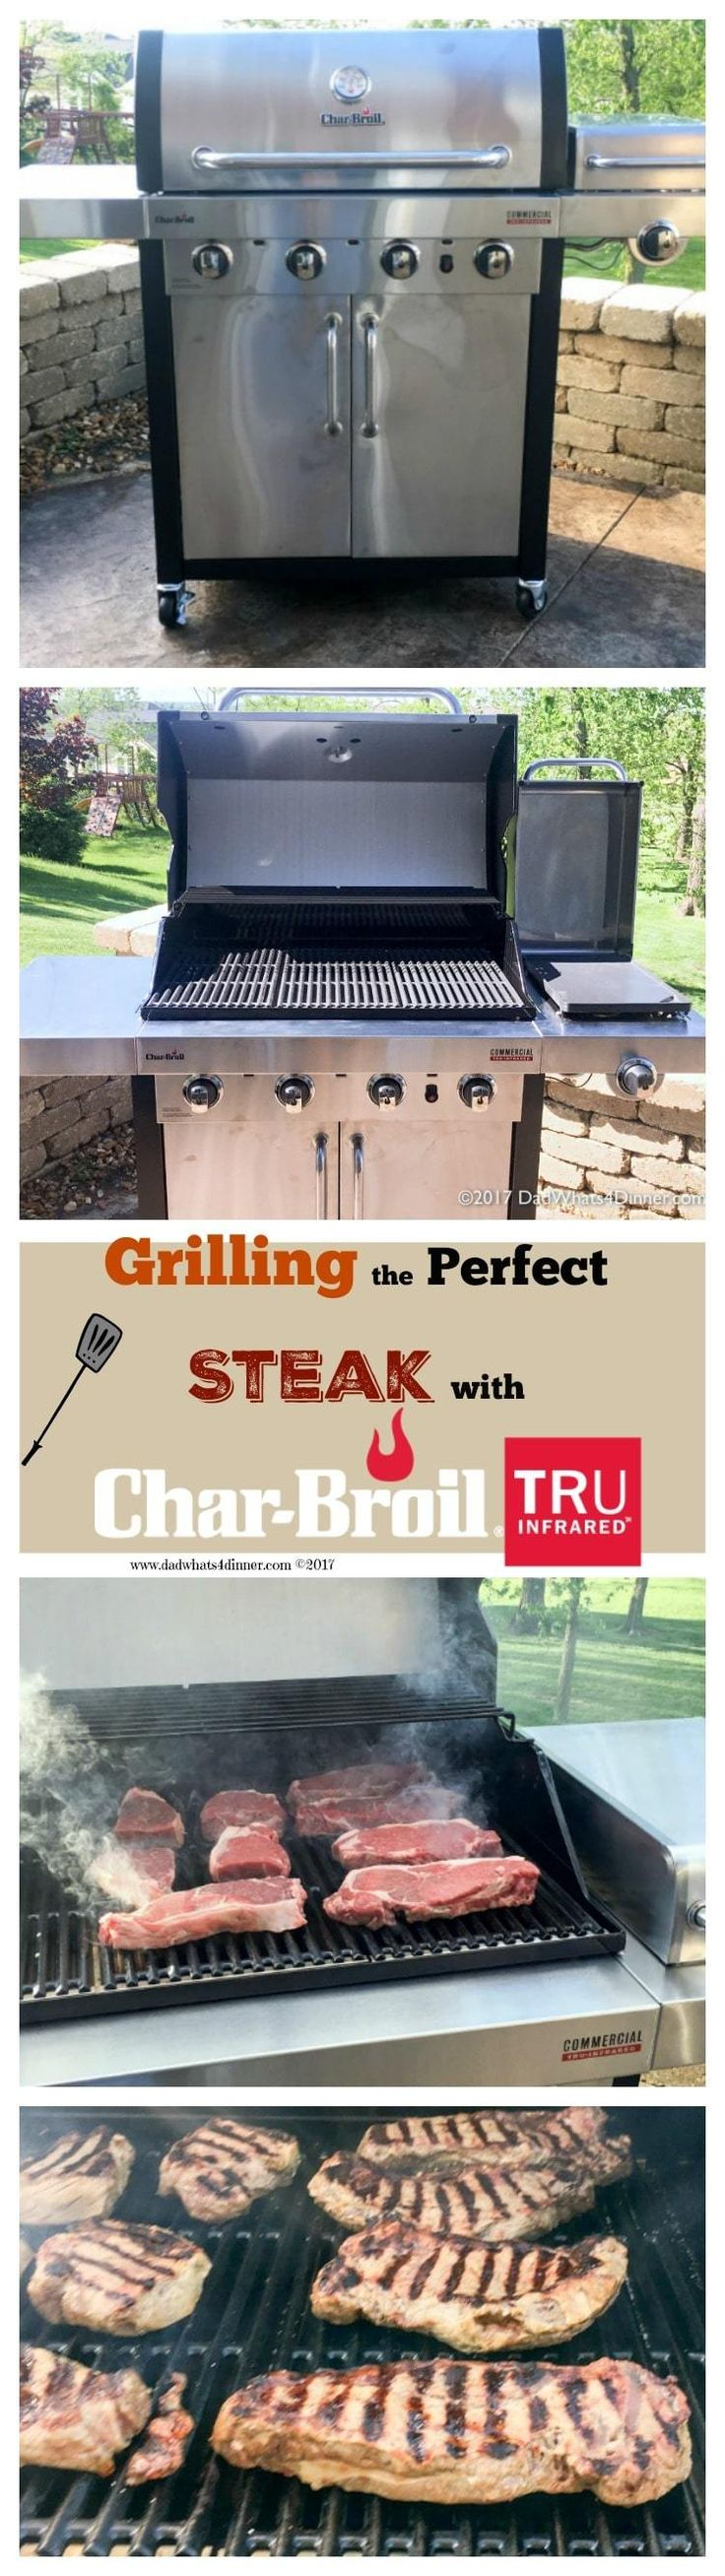 You will be the master of your backyard when you learn how to Grill the Perfect Steak using Char-Broil's Commercial Series TRU-Infrared Gas Grill! #NowYoureCookin @charbroil #ad